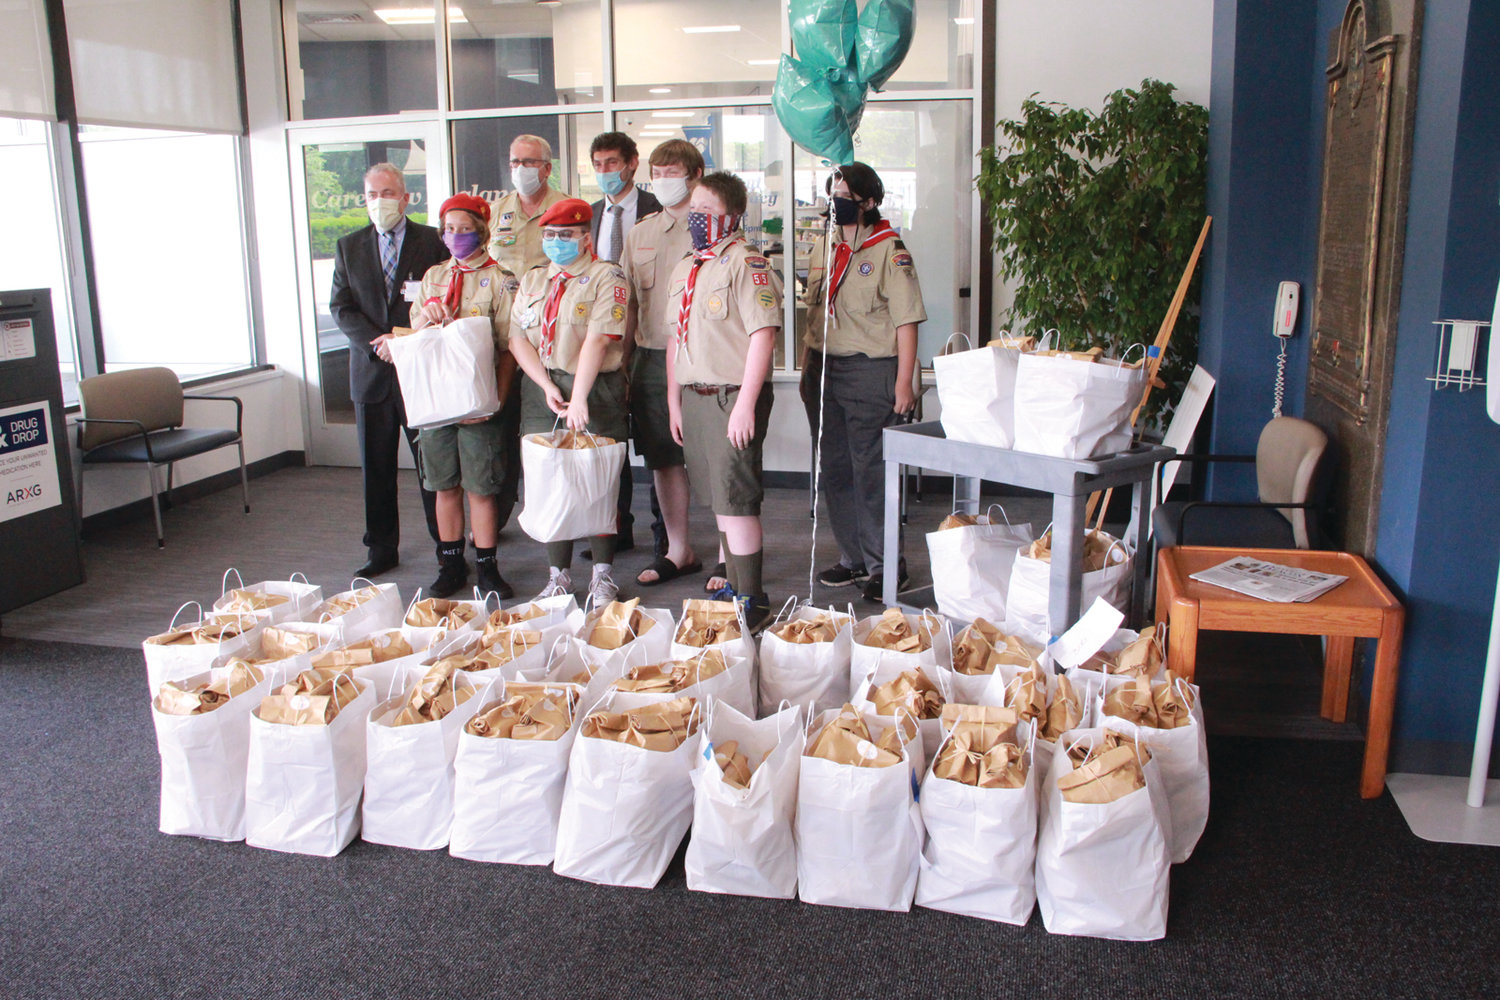 LINED UP  WITH S'MORES: Scouts from left to right, Rachel Levesque, Caitlyn Cunna, William Duckworth, (back) Mathew Duckworth, and (far-right) William Shealy, stand with Bob Haffey Kent Hospital President and Chief Operating Officer (far left), Tim McCandless Scout Executive and CEO of Narraganset Council Boy Scouts of America (left) and Yoni Sunshine development director for the Narraganset Council Boy Scouts of America (middle) in front of the 300 gift packages.